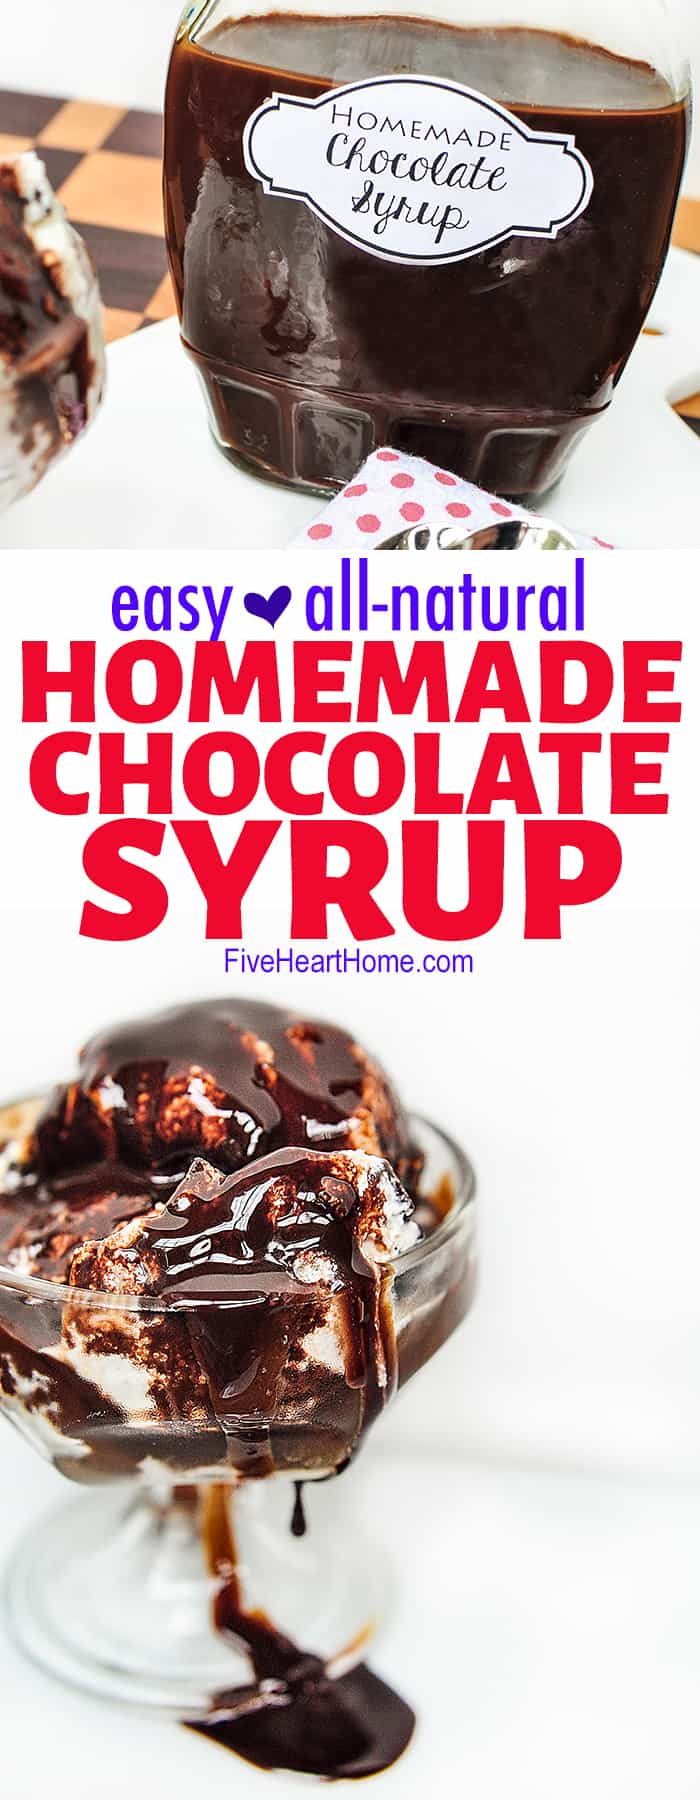 Easy Homemade Chocolate Syrup collage of photos with text